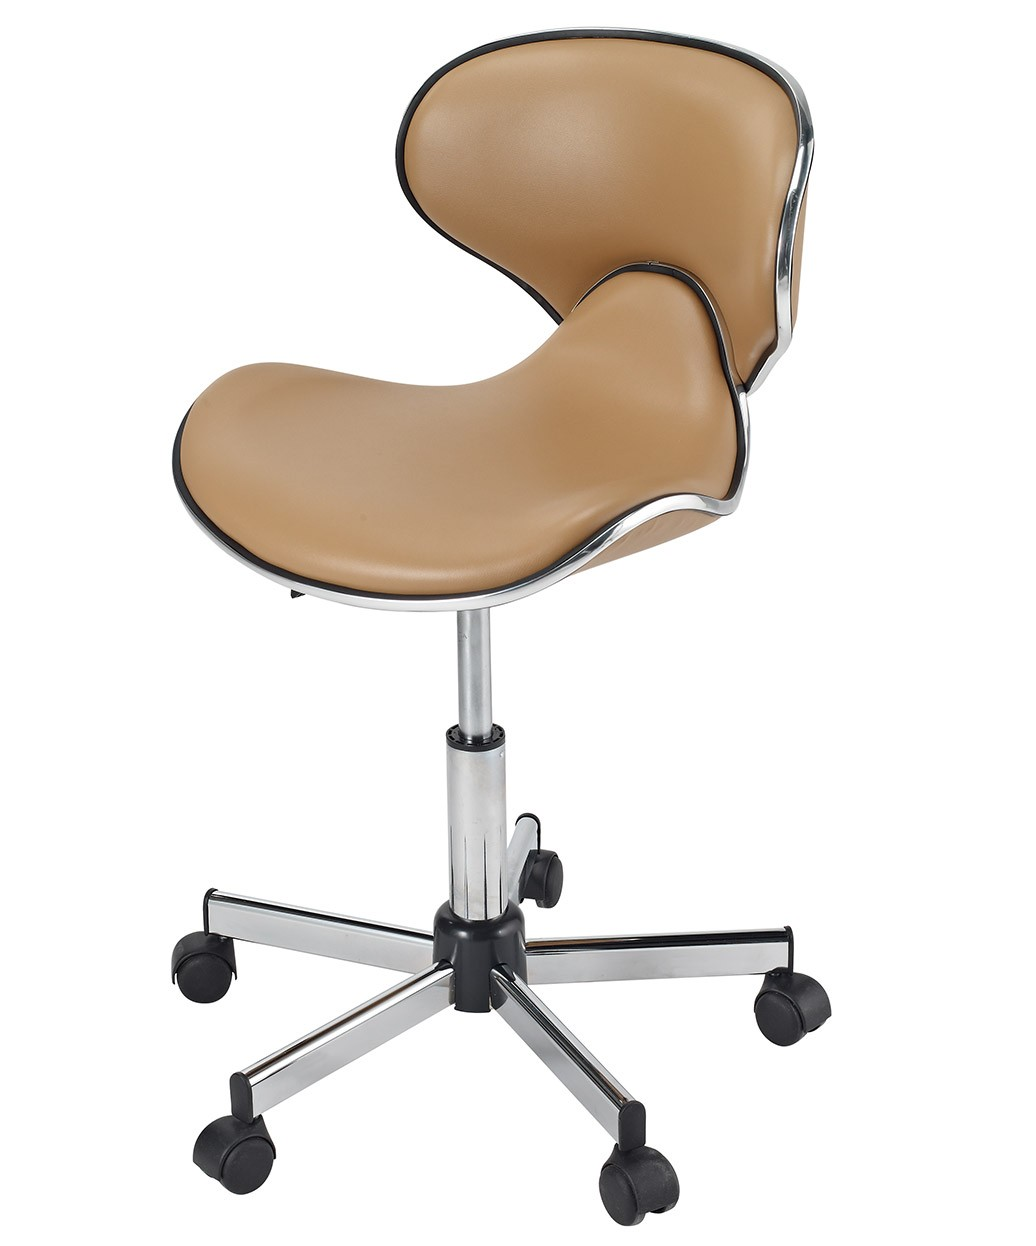 butterfly pedicure chair ergonomic esthetician pibbs 645 mid stool